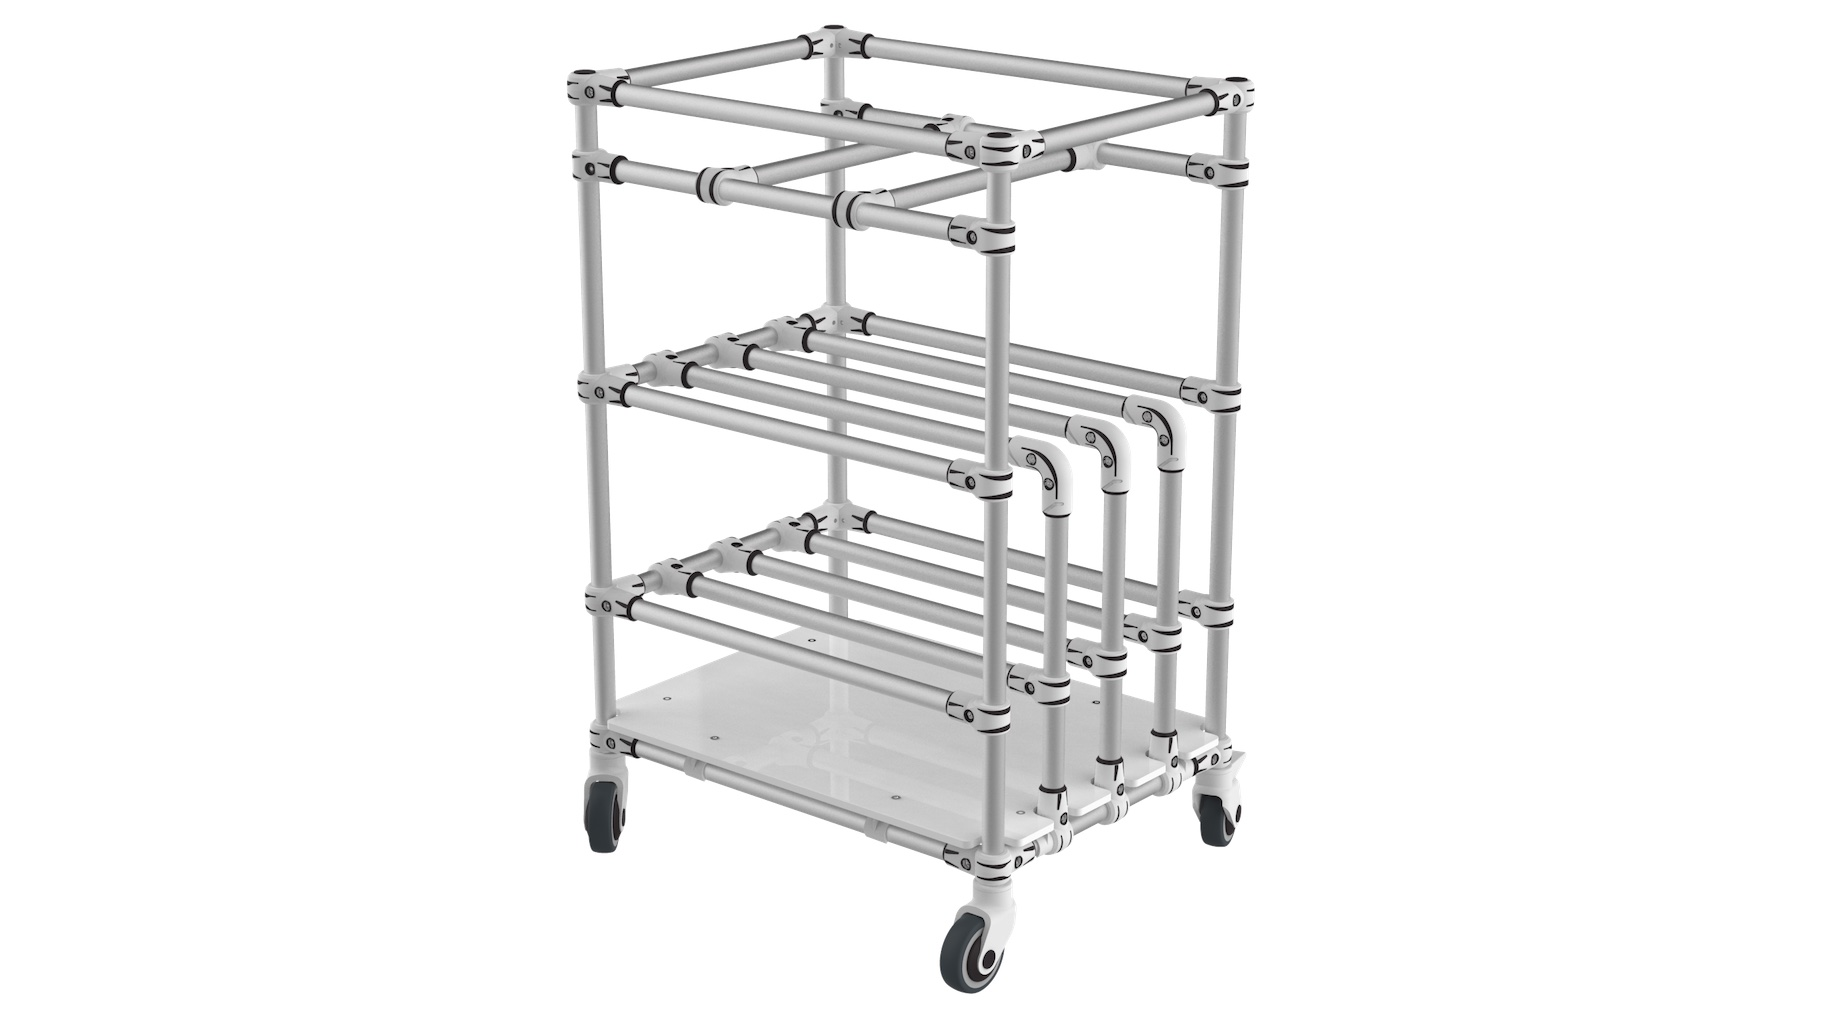 Electronic Industry - Bespoke Cart integrating 2 functions: vertical storage on low level and bin transport on upper level.